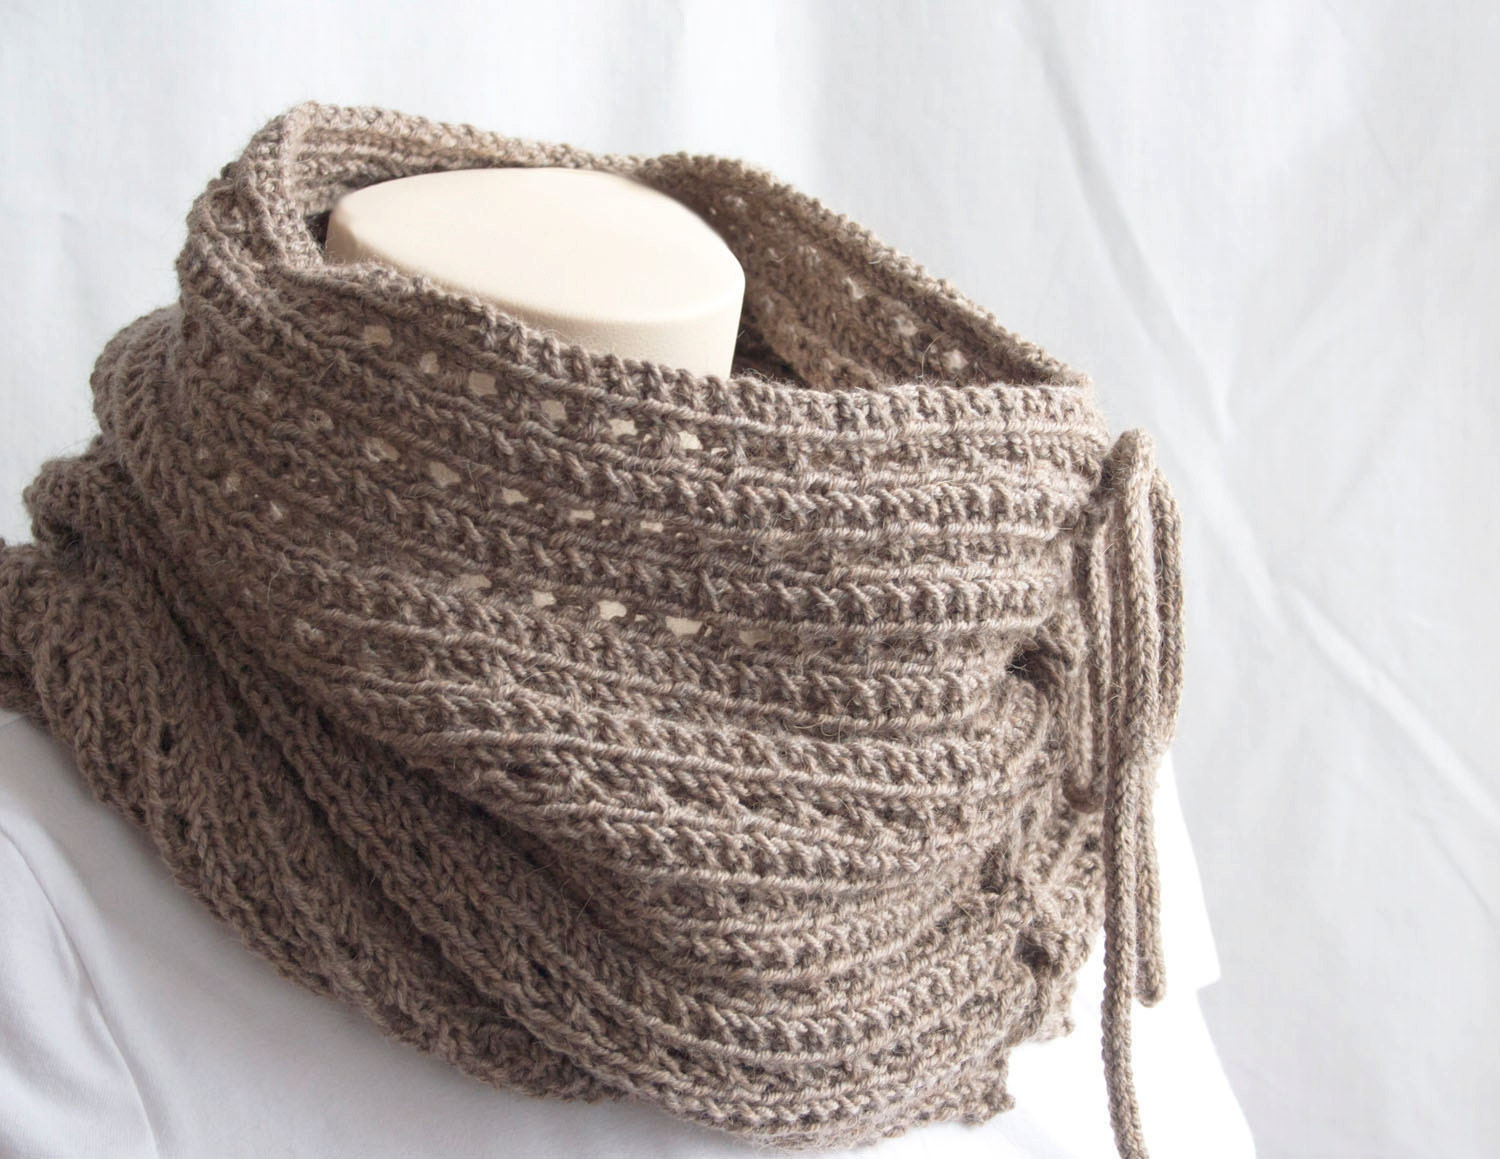 Knitting Patterns For Scarfs : Knitting Pattern Cowl The Mokaccino Cowl Infinity Scarf